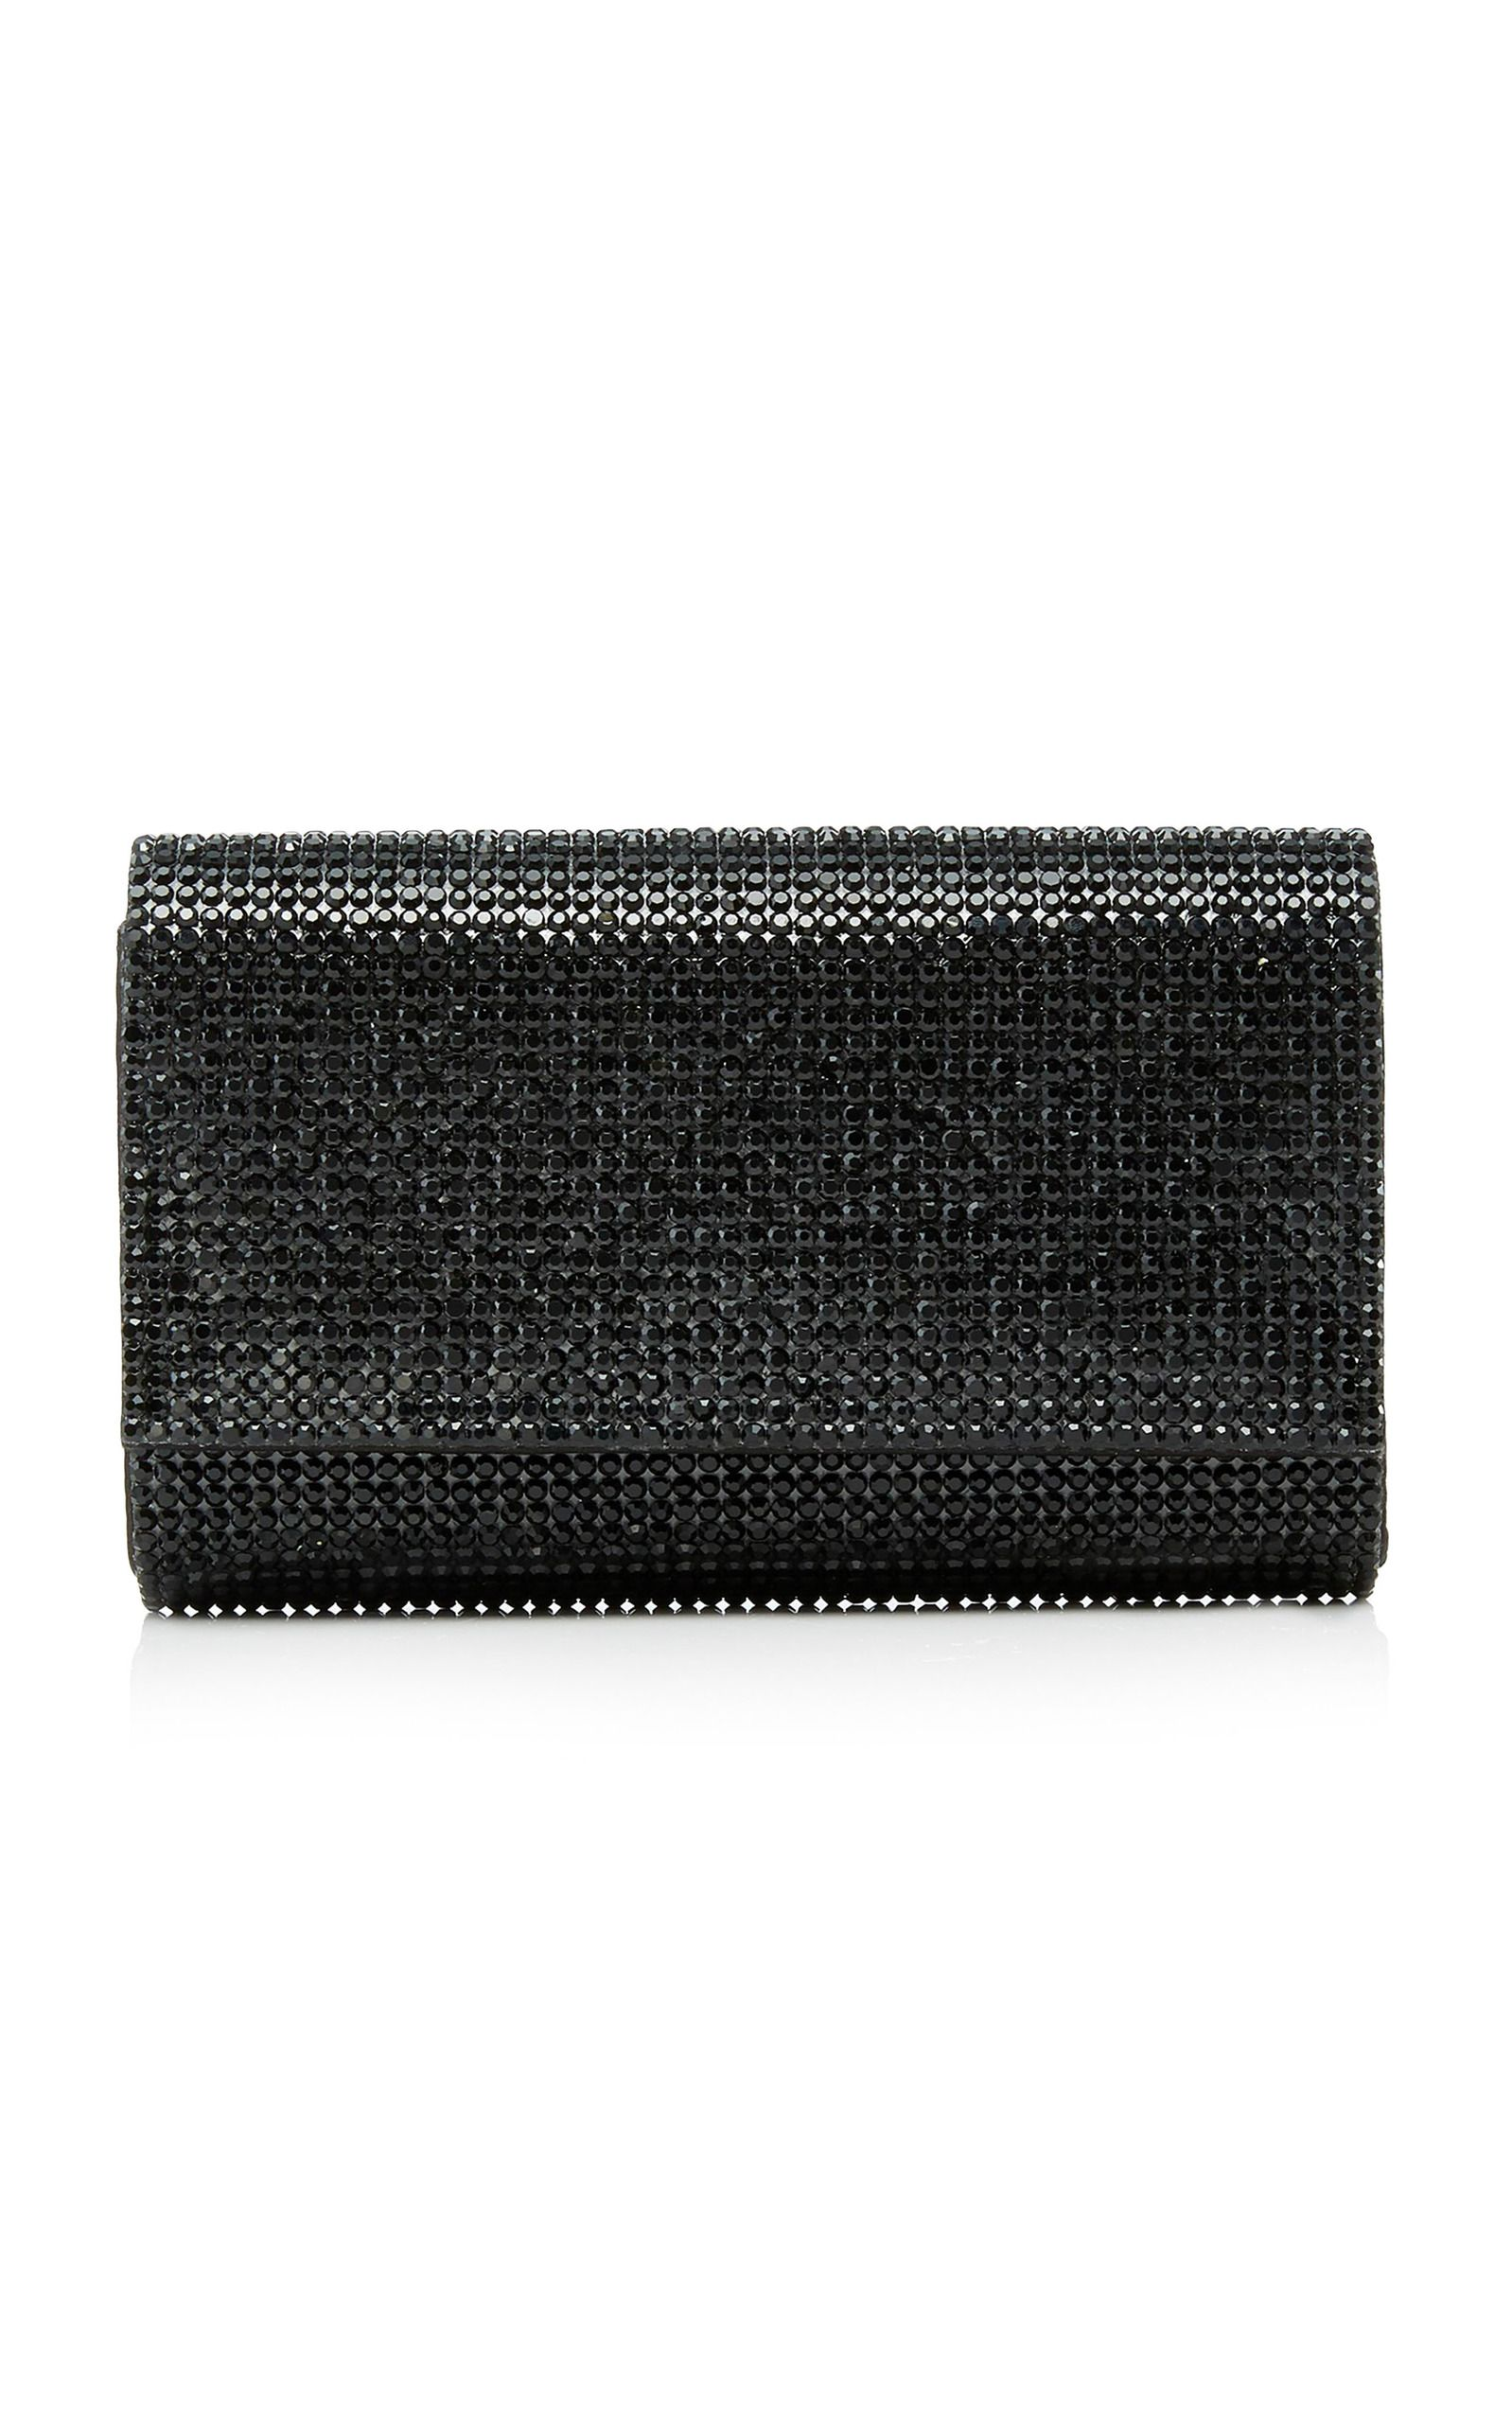 Original Cheap Price Buy Cheap Get To Buy Fizzy Crystal-Embellished Clutch Judith Leiber FUD1OK4OR